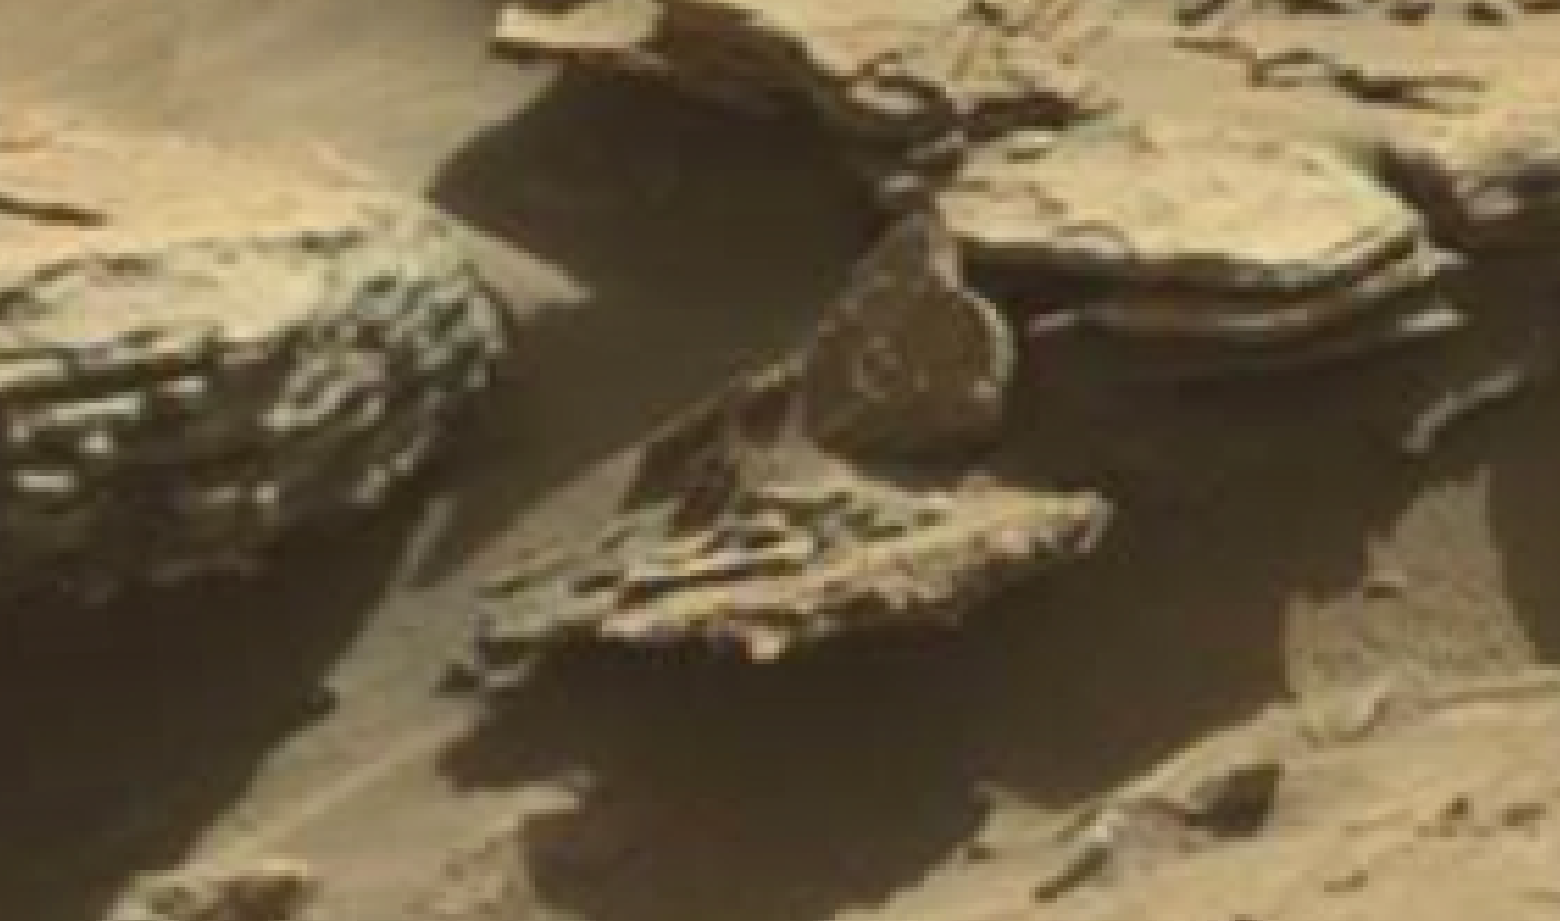 mars sol 1298 anomaly-artifacts 3 was life on mars